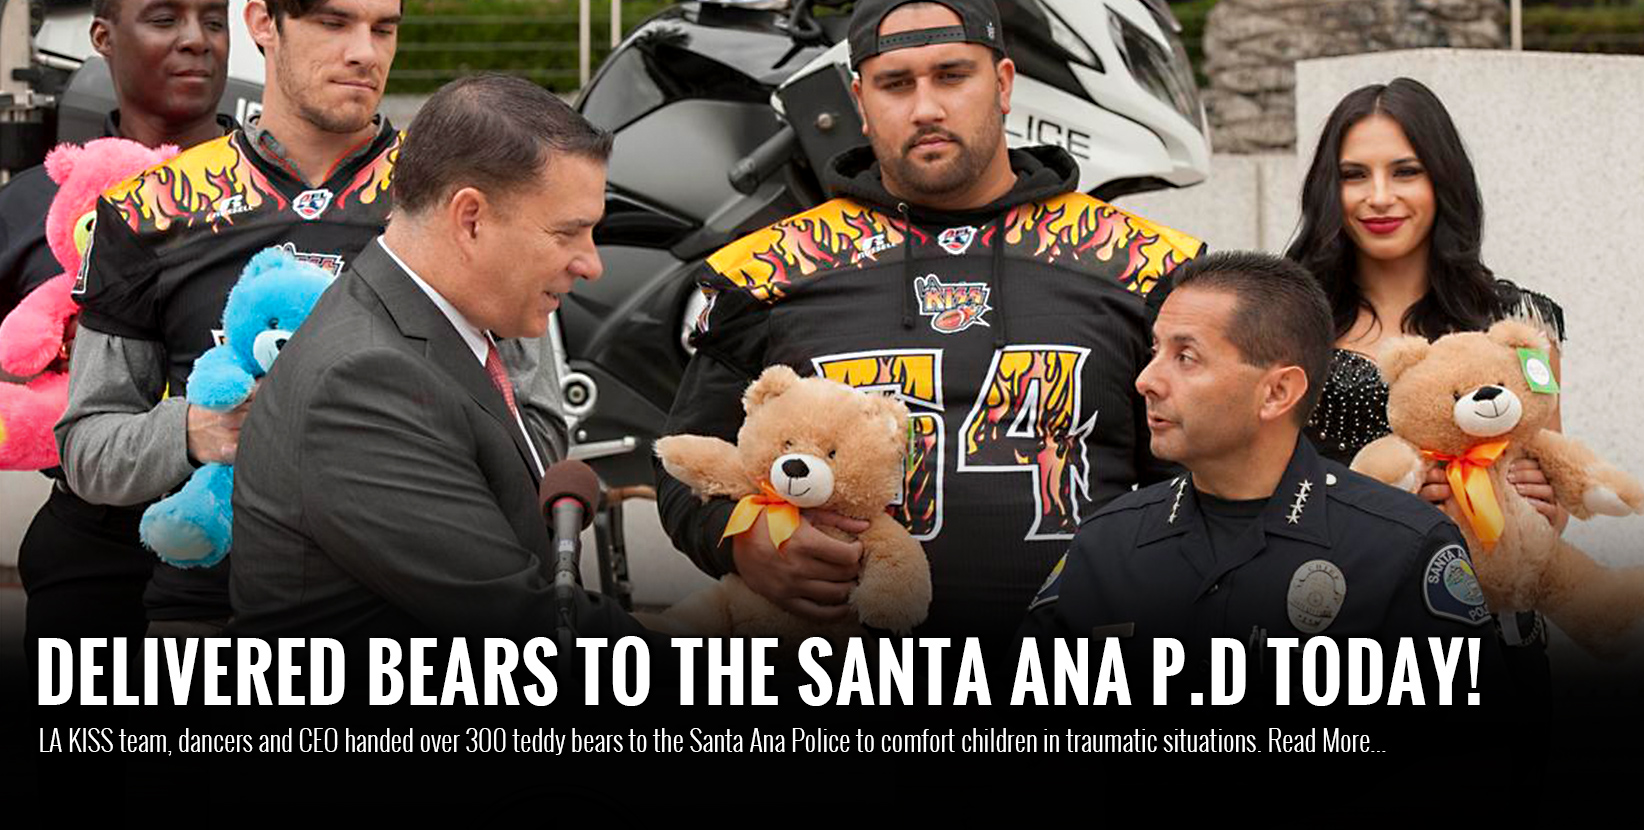 300 teddy bears handed over to Santa Ana police to comfort children